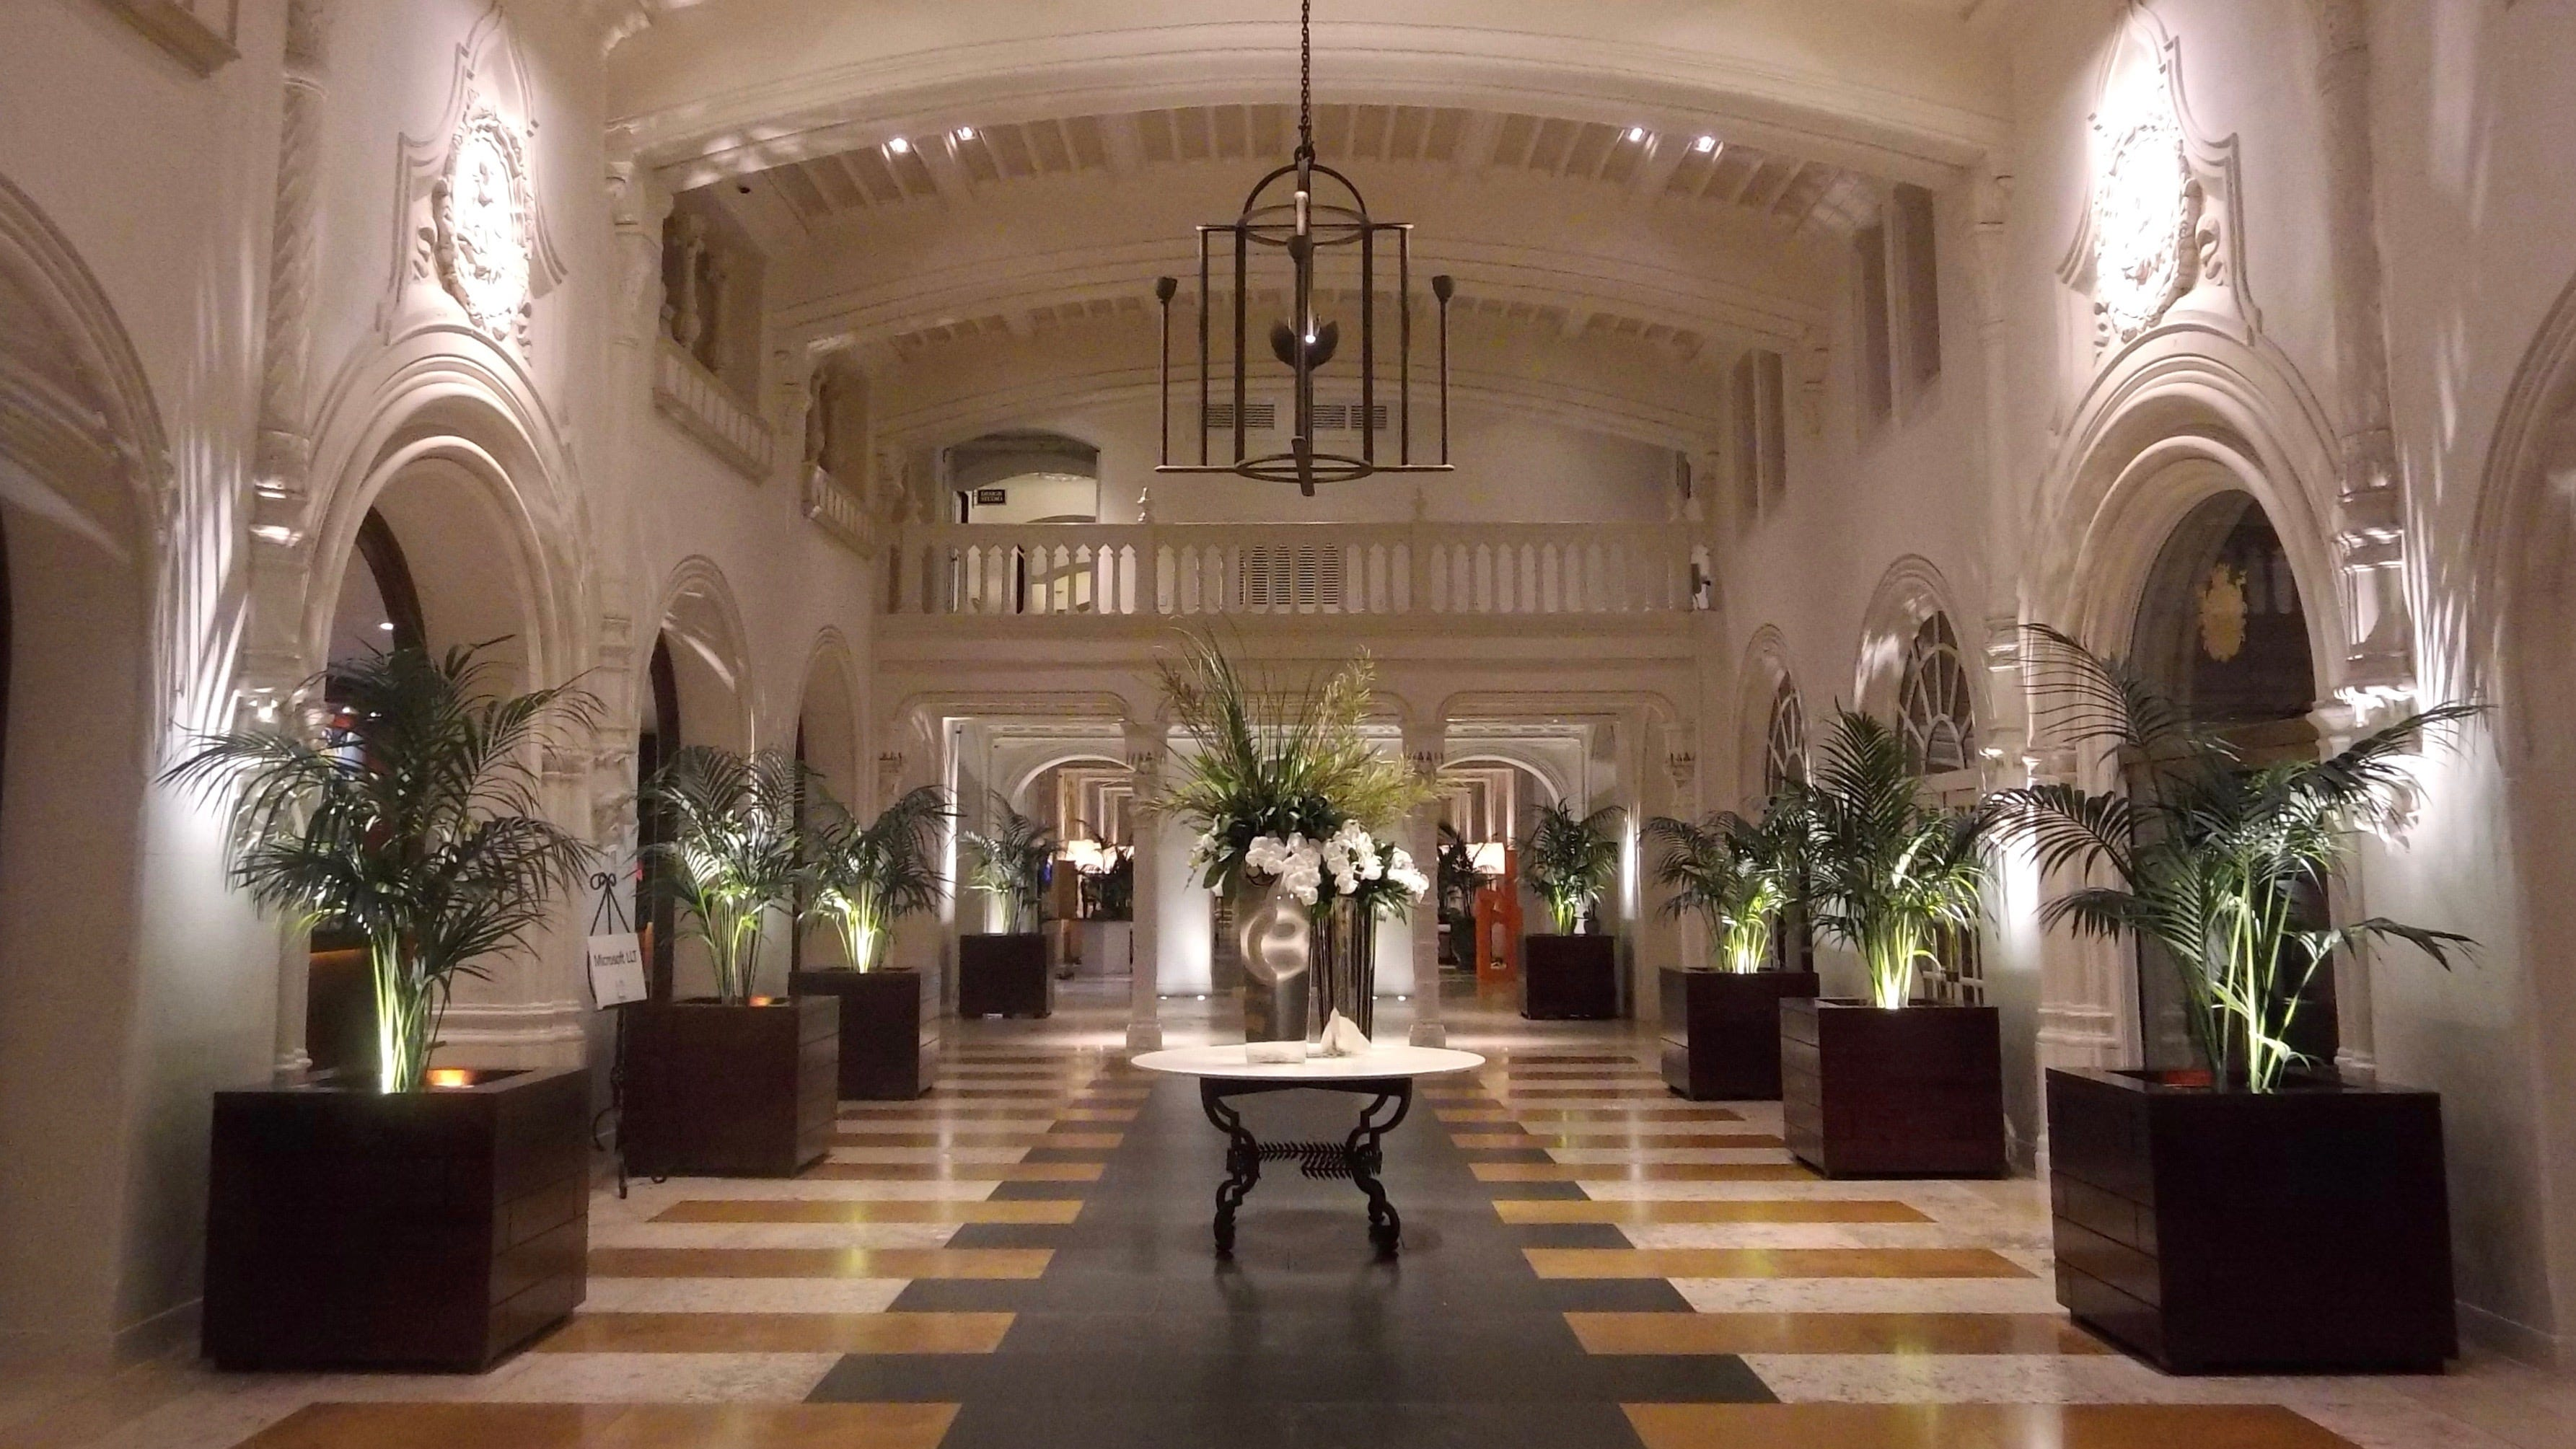 The elegant lobby of Boca Raton Resort & Club.